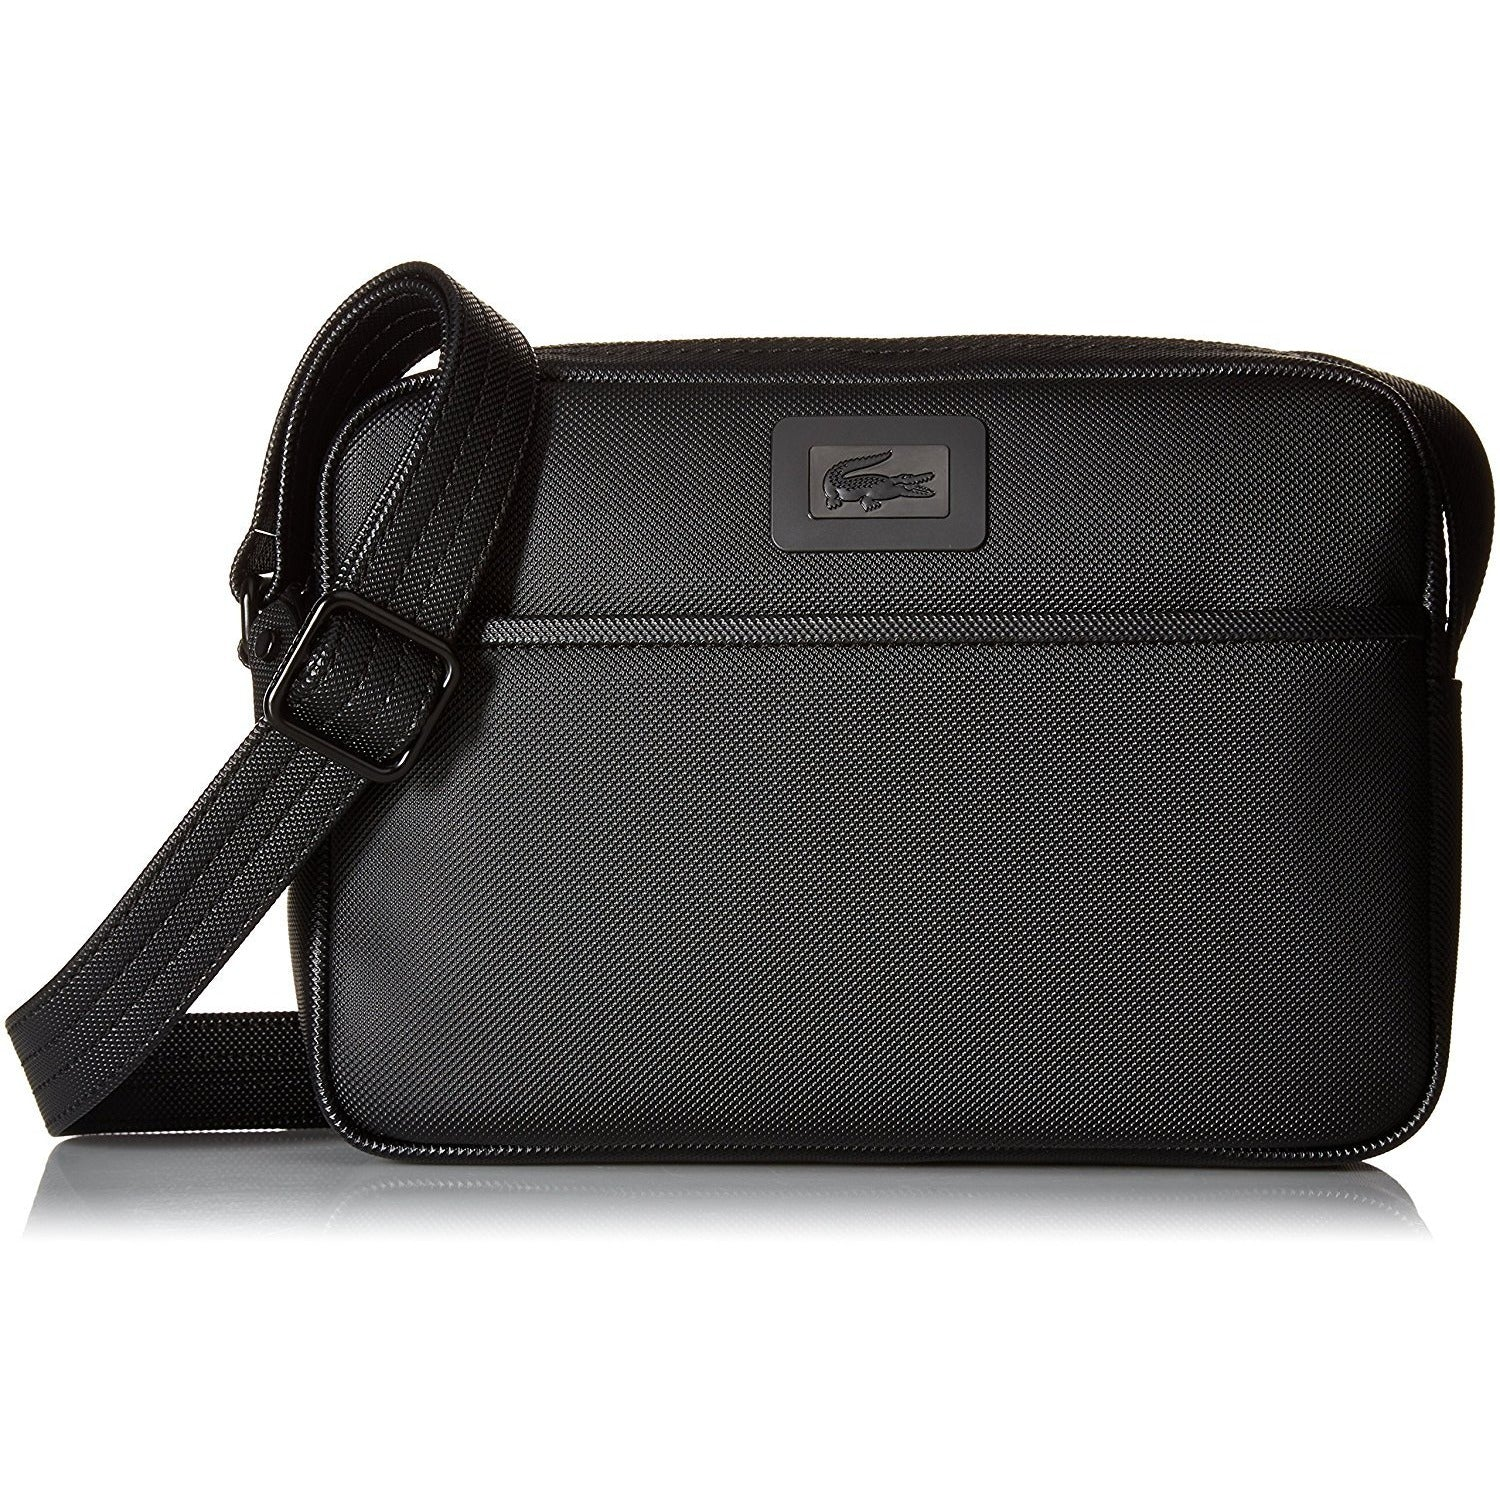 Lacoste Men S Classic Small Crossbody, Black